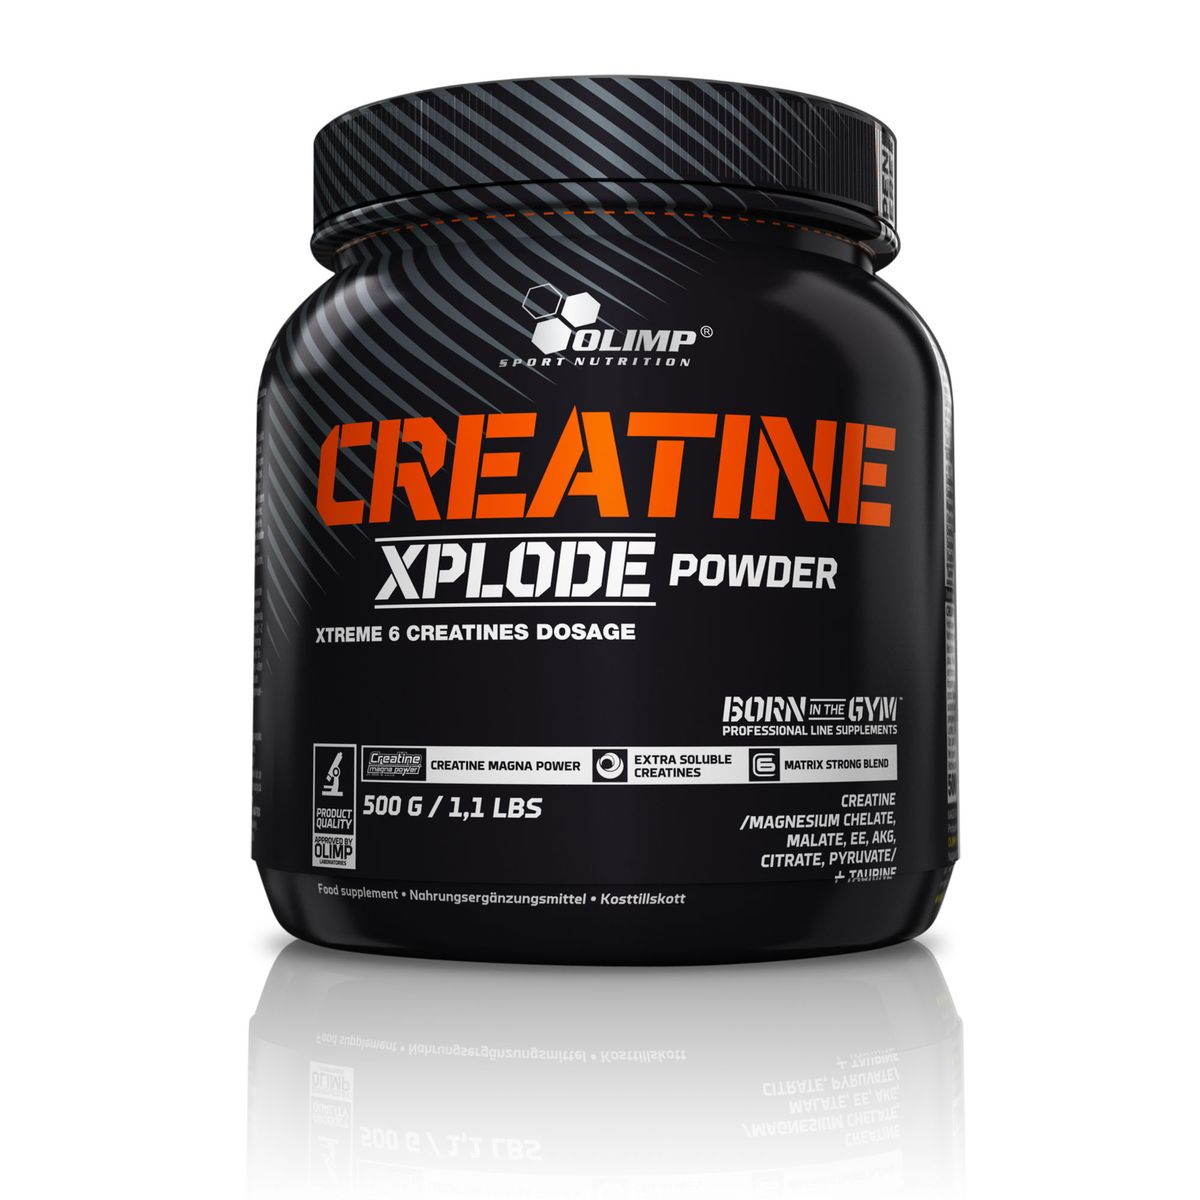 Креатин Olimp Sport Nutrition Creatine Xplode Powder, апельсин, 500 г